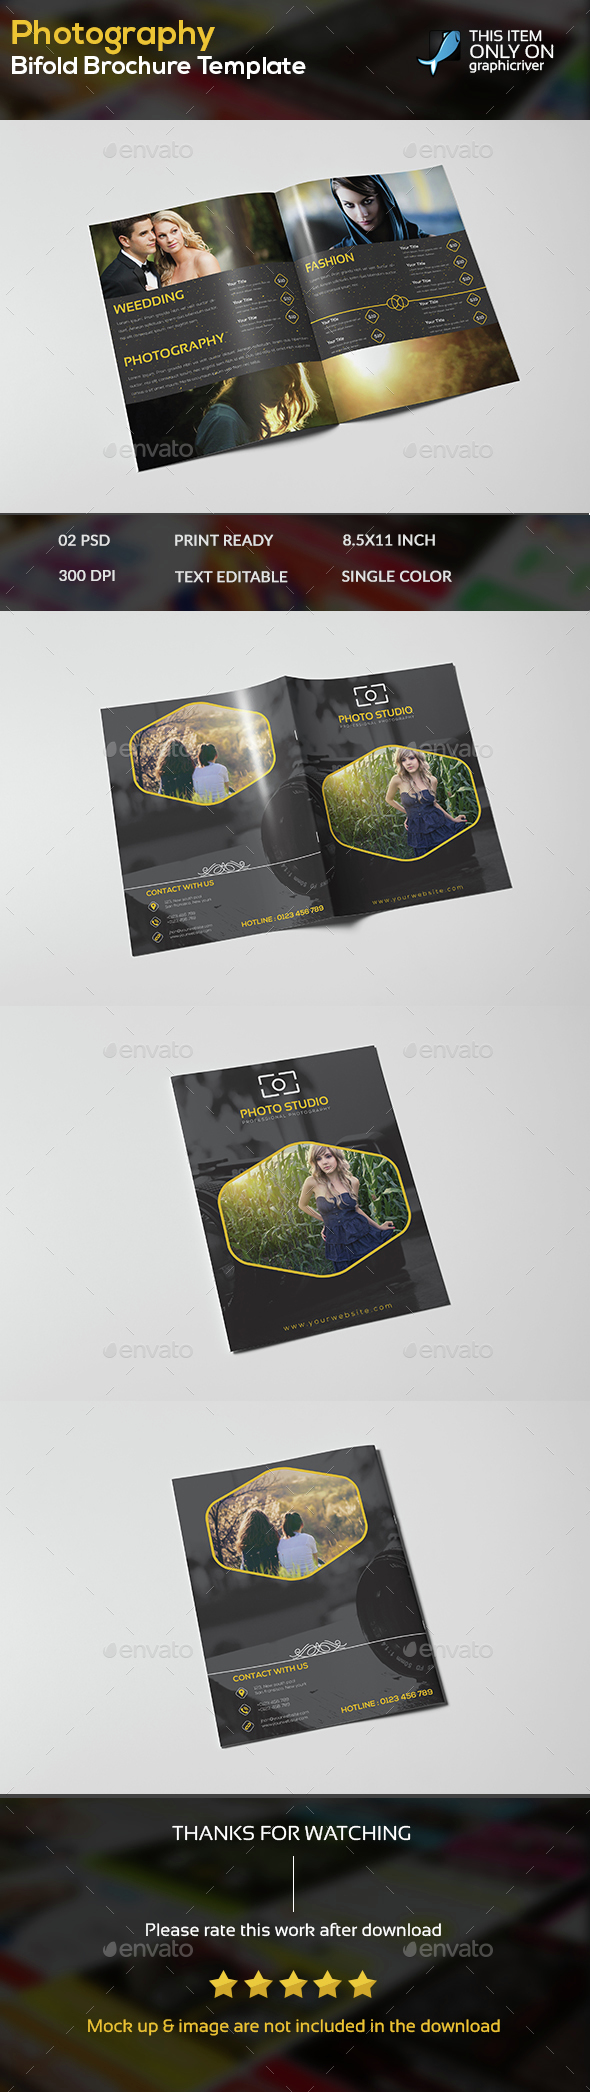 Photography Bifold Brochure Template - Brochures Print Templates